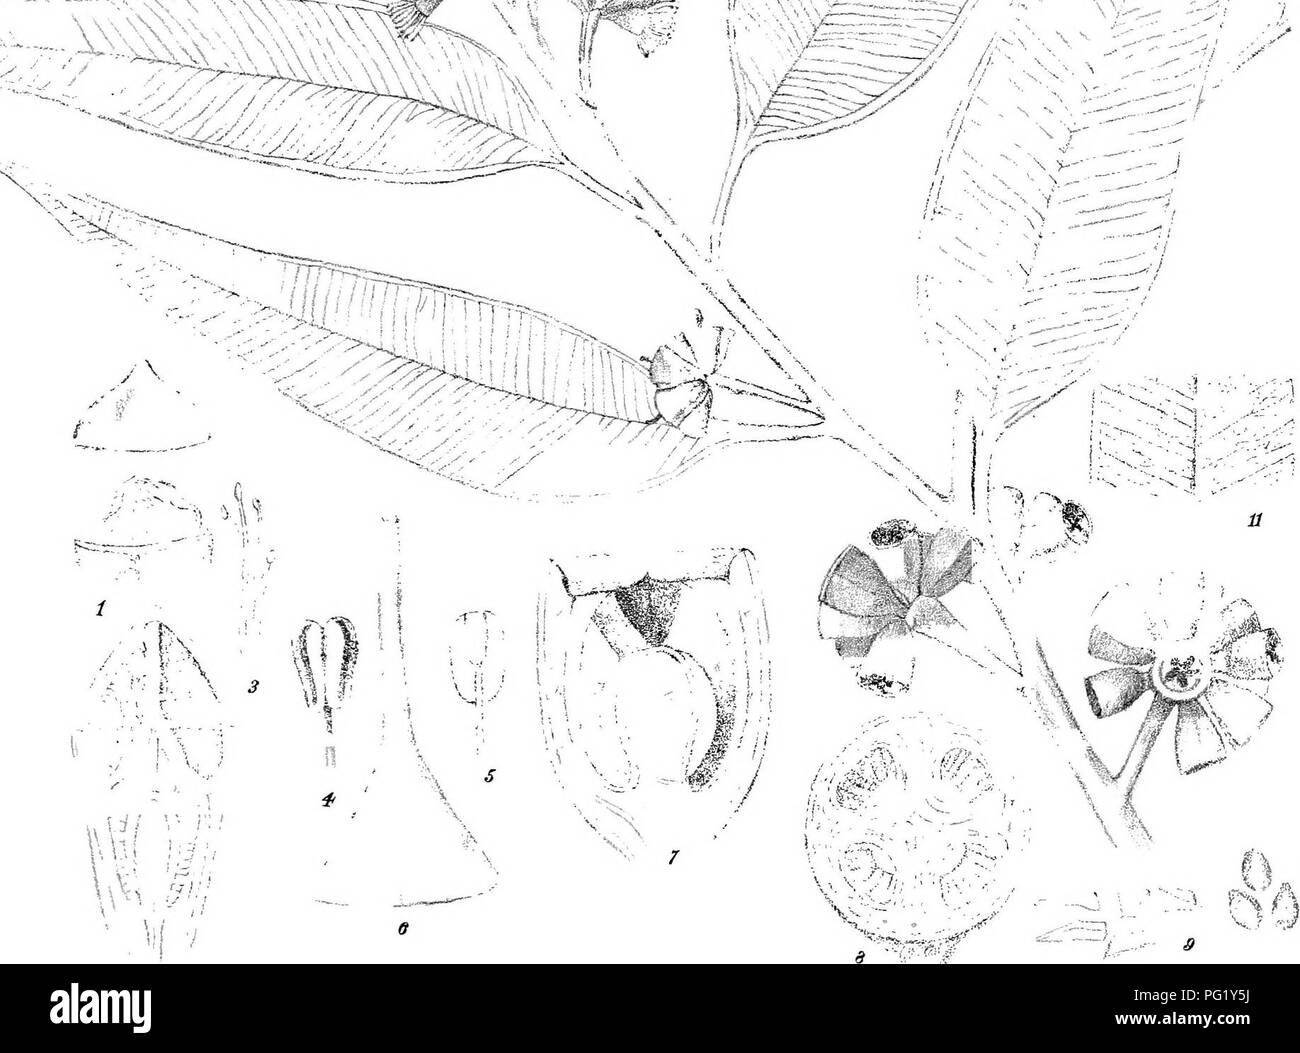 . Eucalyptographia. A descriptive atlas of the eucalypts of Australia and the adjoining islands;. Eucalyptus; Botany. .-, V ;i.-. -f .-,7 ^. ^- 10 aAu^;n del. Cfroedel & G° Lrth. F.v-M. drpexrt- Stenm Lttho Gov. Printing Office Melt. Sm(gii^^ws ]£)(s)(iff©M(|g. Smith.. Please note that these images are extracted from scanned page images that may have been digitally enhanced for readability - coloration and appearance of these illustrations may not perfectly resemble the original work.. Mueller, Ferdinand von, 1825-1896. Melbourne, J. Ferres, Govt. Print; [etc. ,etc. ] - Stock Image